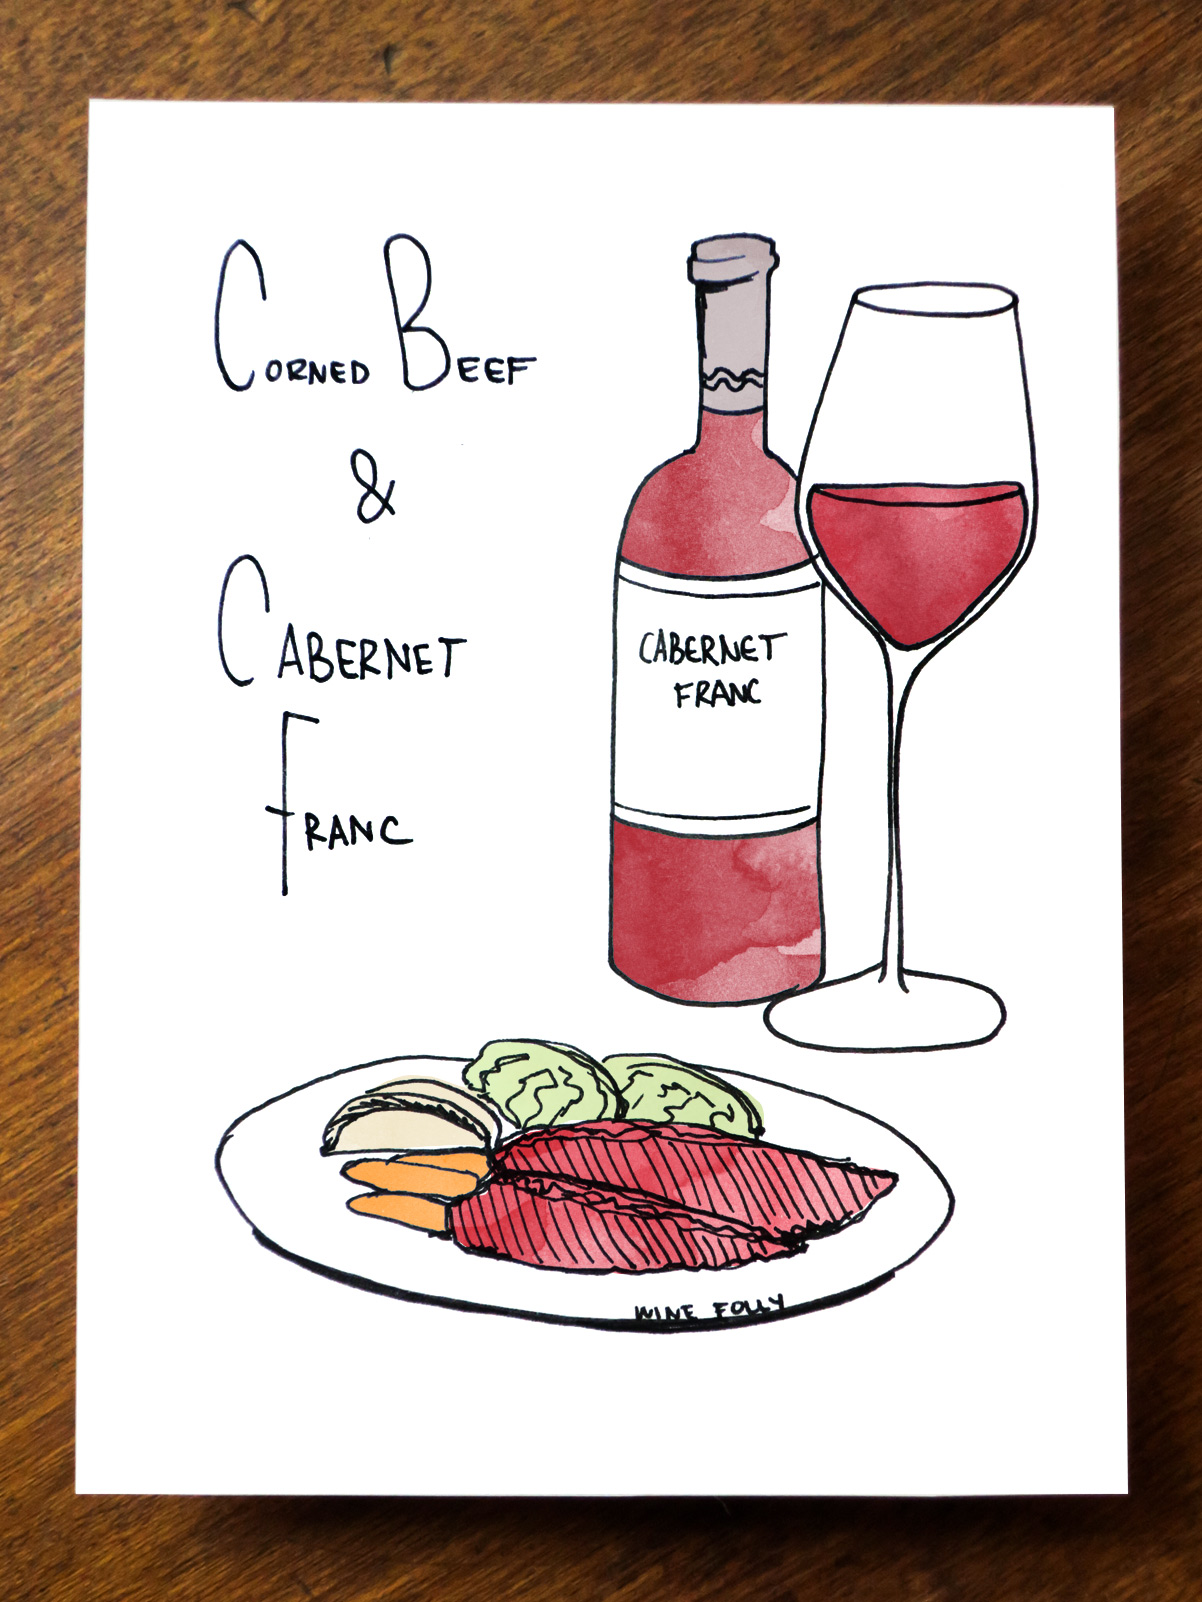 corned-beef-wine-pairing-cabernet-franc